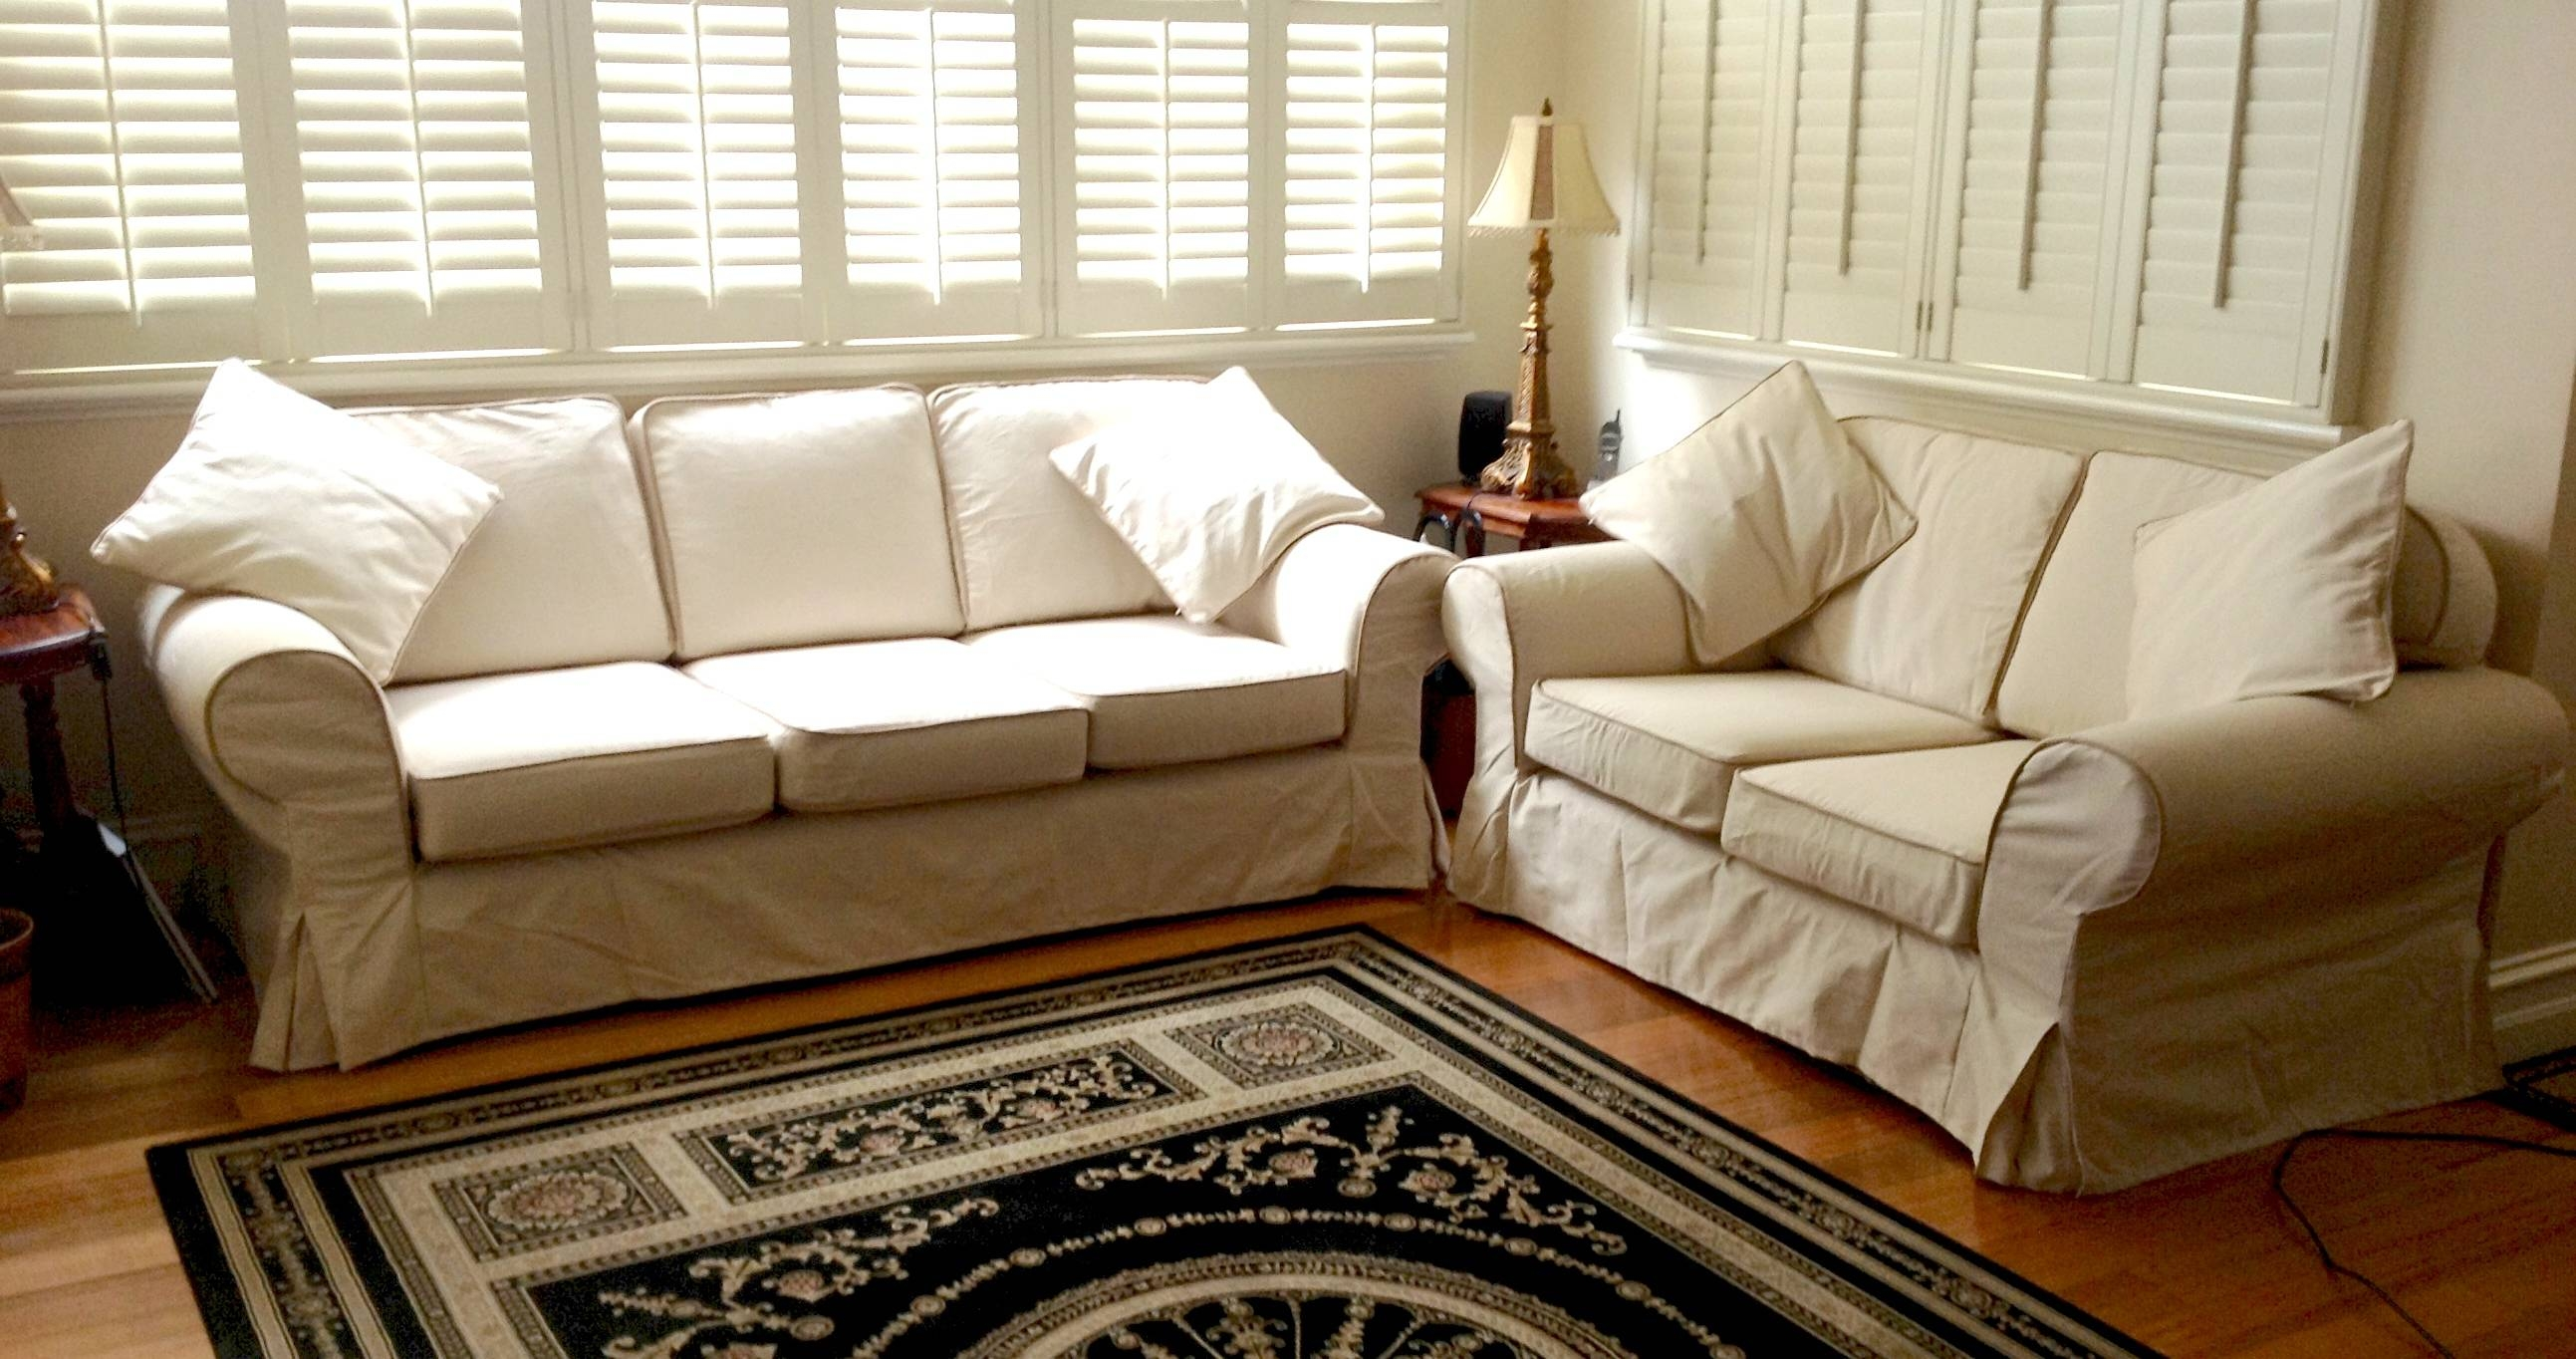 Custom Slipcovers And Couch Cover For Any Sofa Online Regarding Slipcovers Sofas (View 8 of 30)